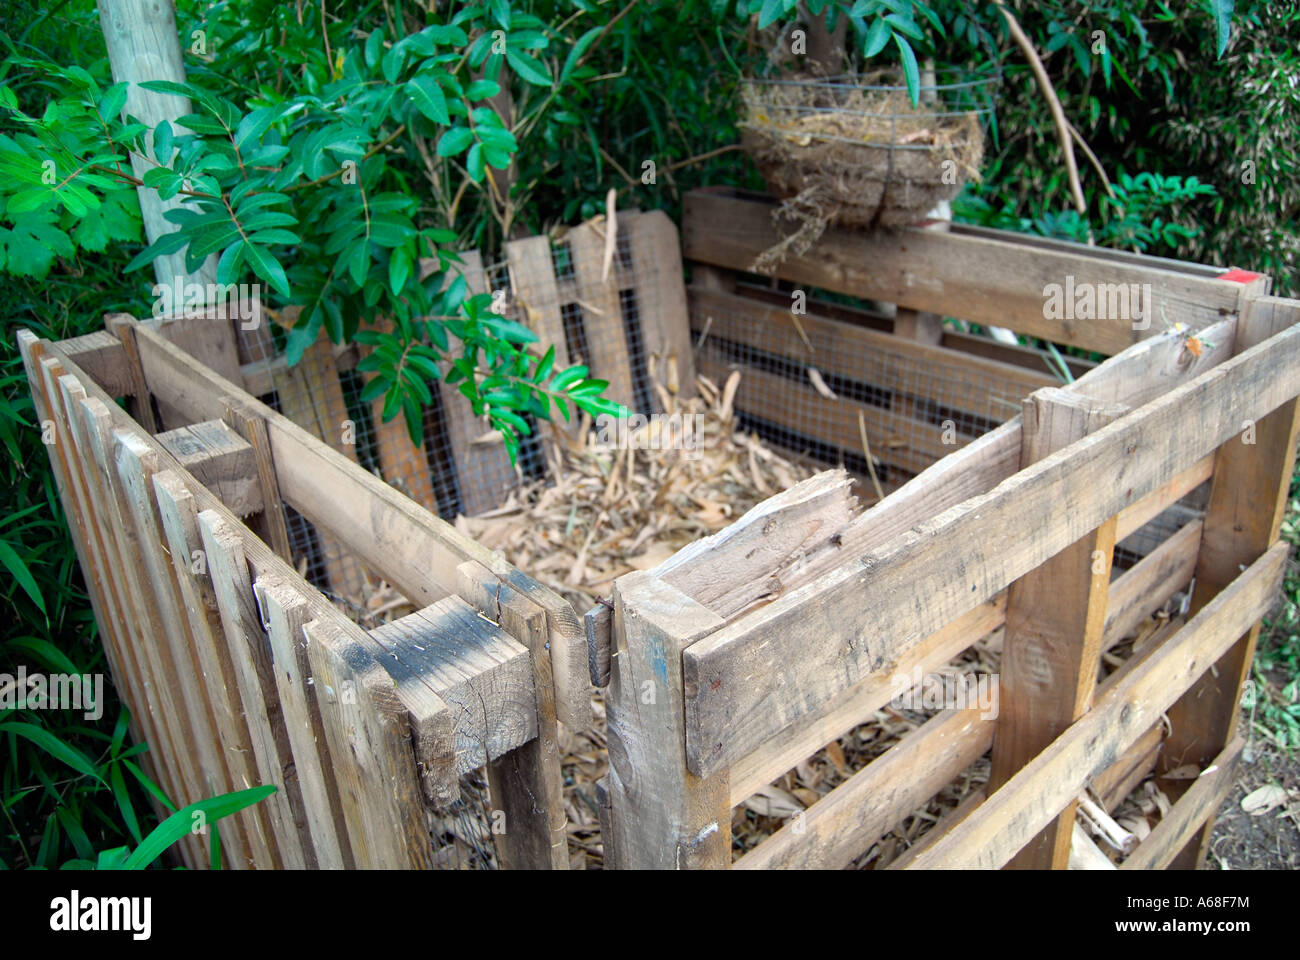 Compost Bin Made Of Recycled Pine Pallets Stock Photo 11495431 Alamy